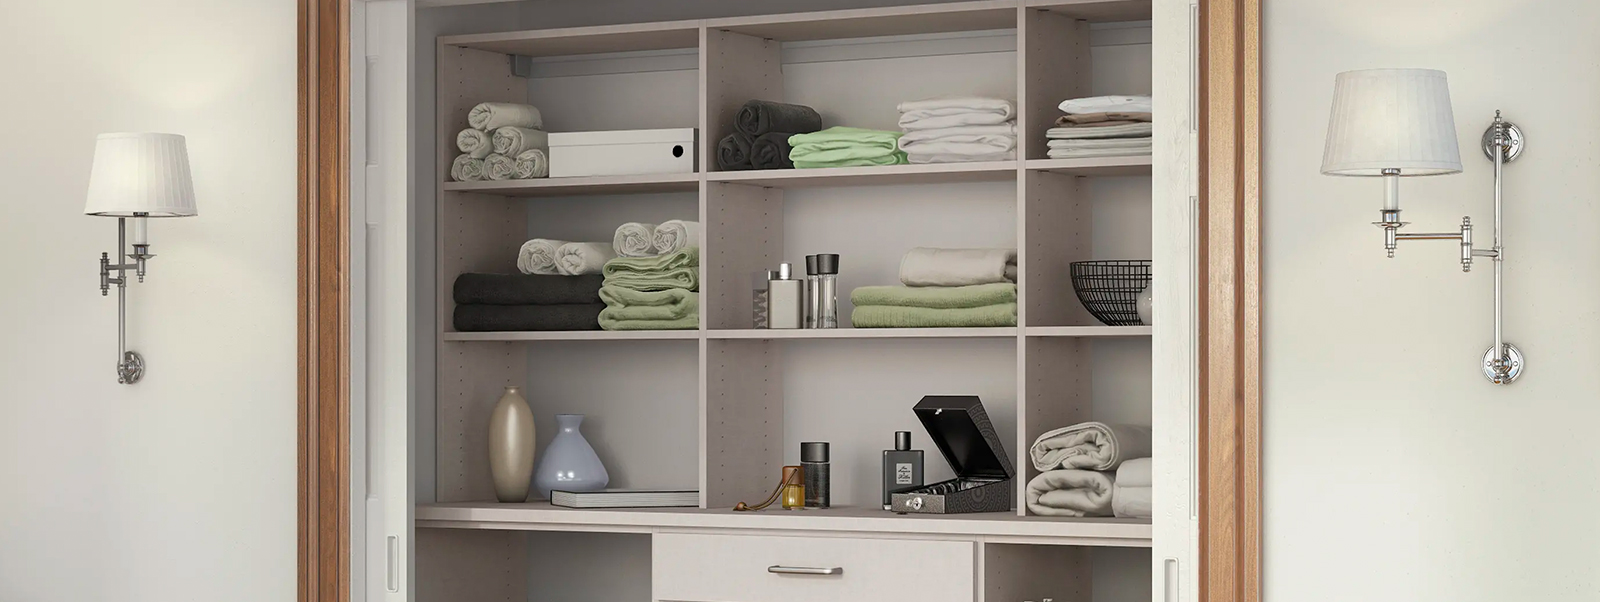 Linen Cabinets & Hall Closet Organizers by California Closets